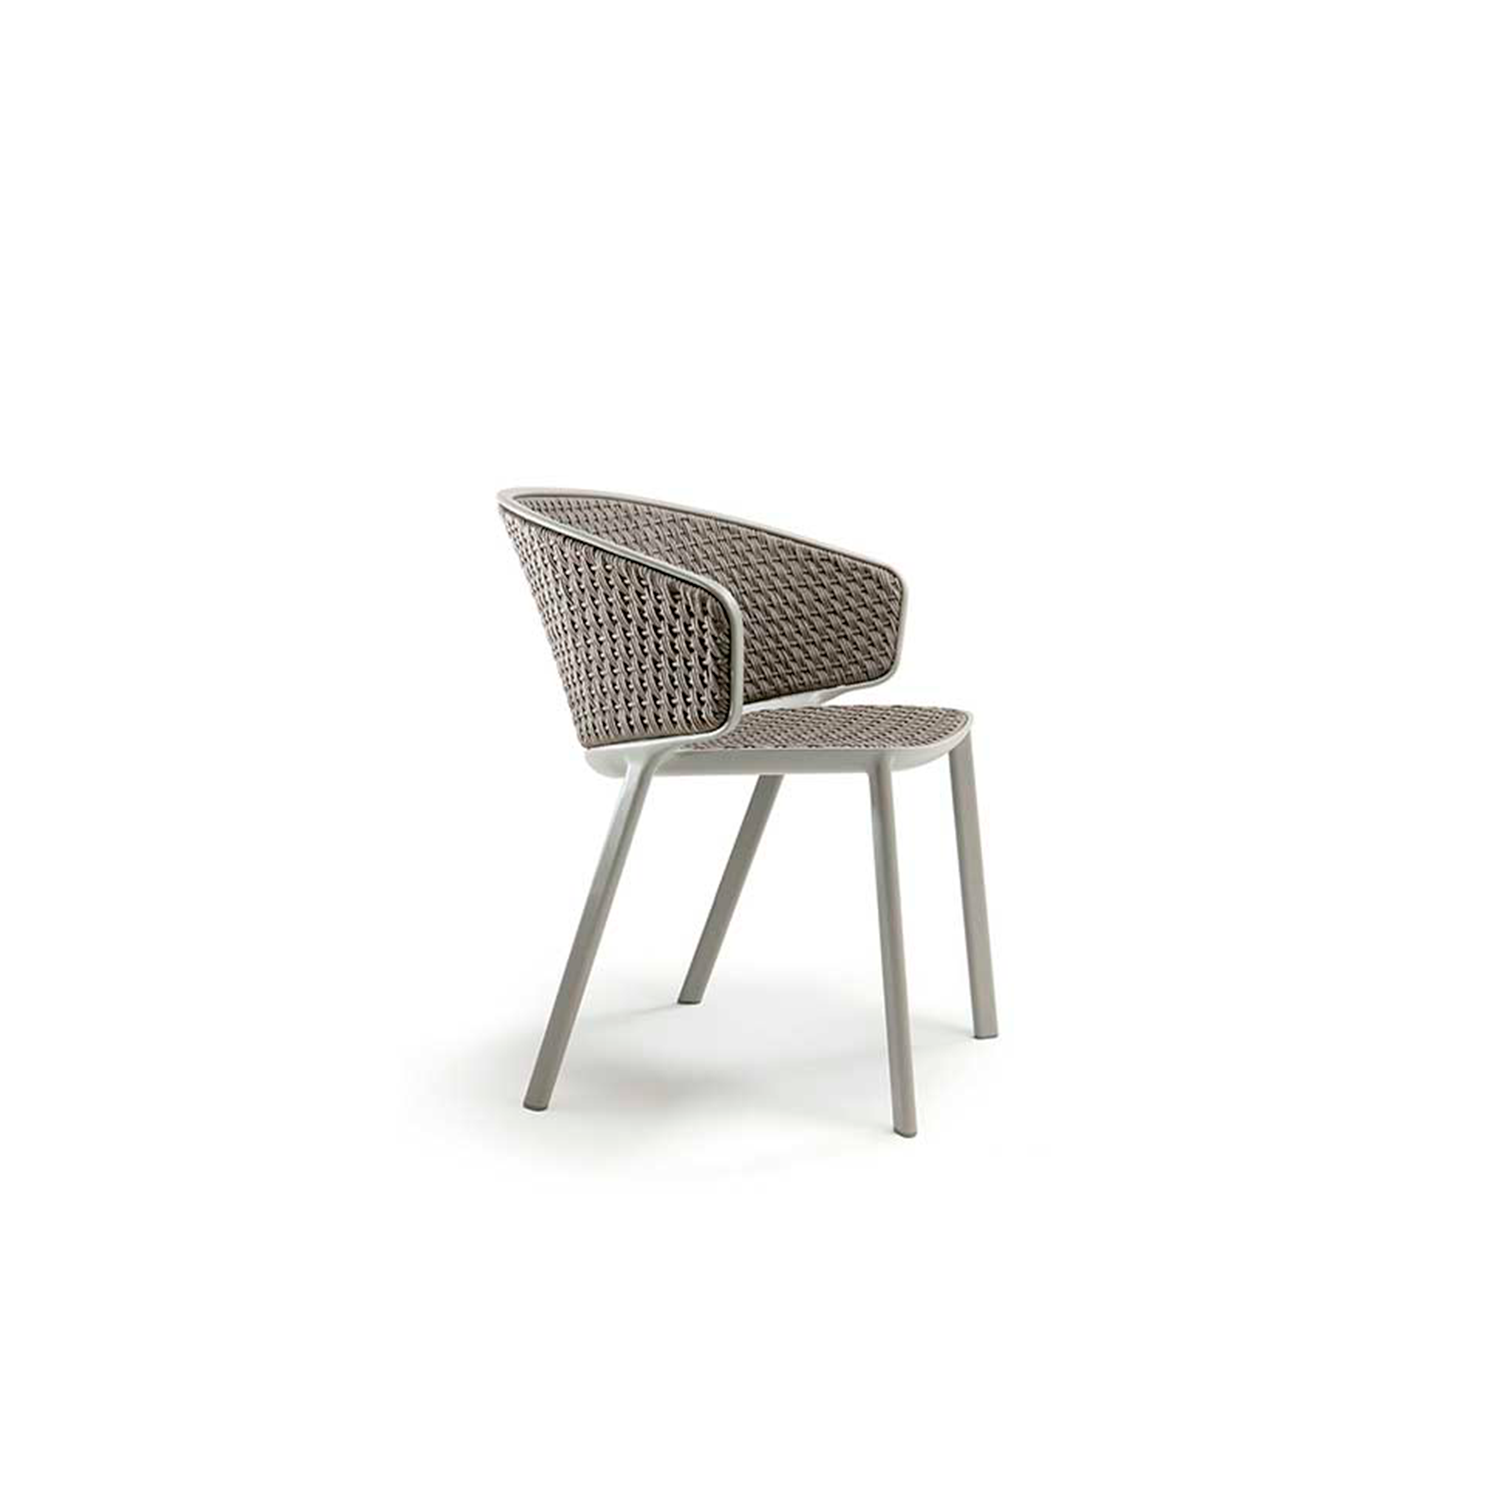 Pluvia Rope Dining Armchair - Conceived and designed for outdoors, its harmonious lines, refined design and attention to details mean that Pluvia is also perfect for indoors and will become the ideal armchair to enhance the living area. Elegance and simplicity, together with design thinking that unites aesthetics and versatility, make Pluvia an armchair that 'interprets' the mood of its settings, and enhancing addition to any kind of open-air living space and a surprising one for interiors.  The rain cover is available at extra cost. Please enquire for more information.   Matter of Stuff